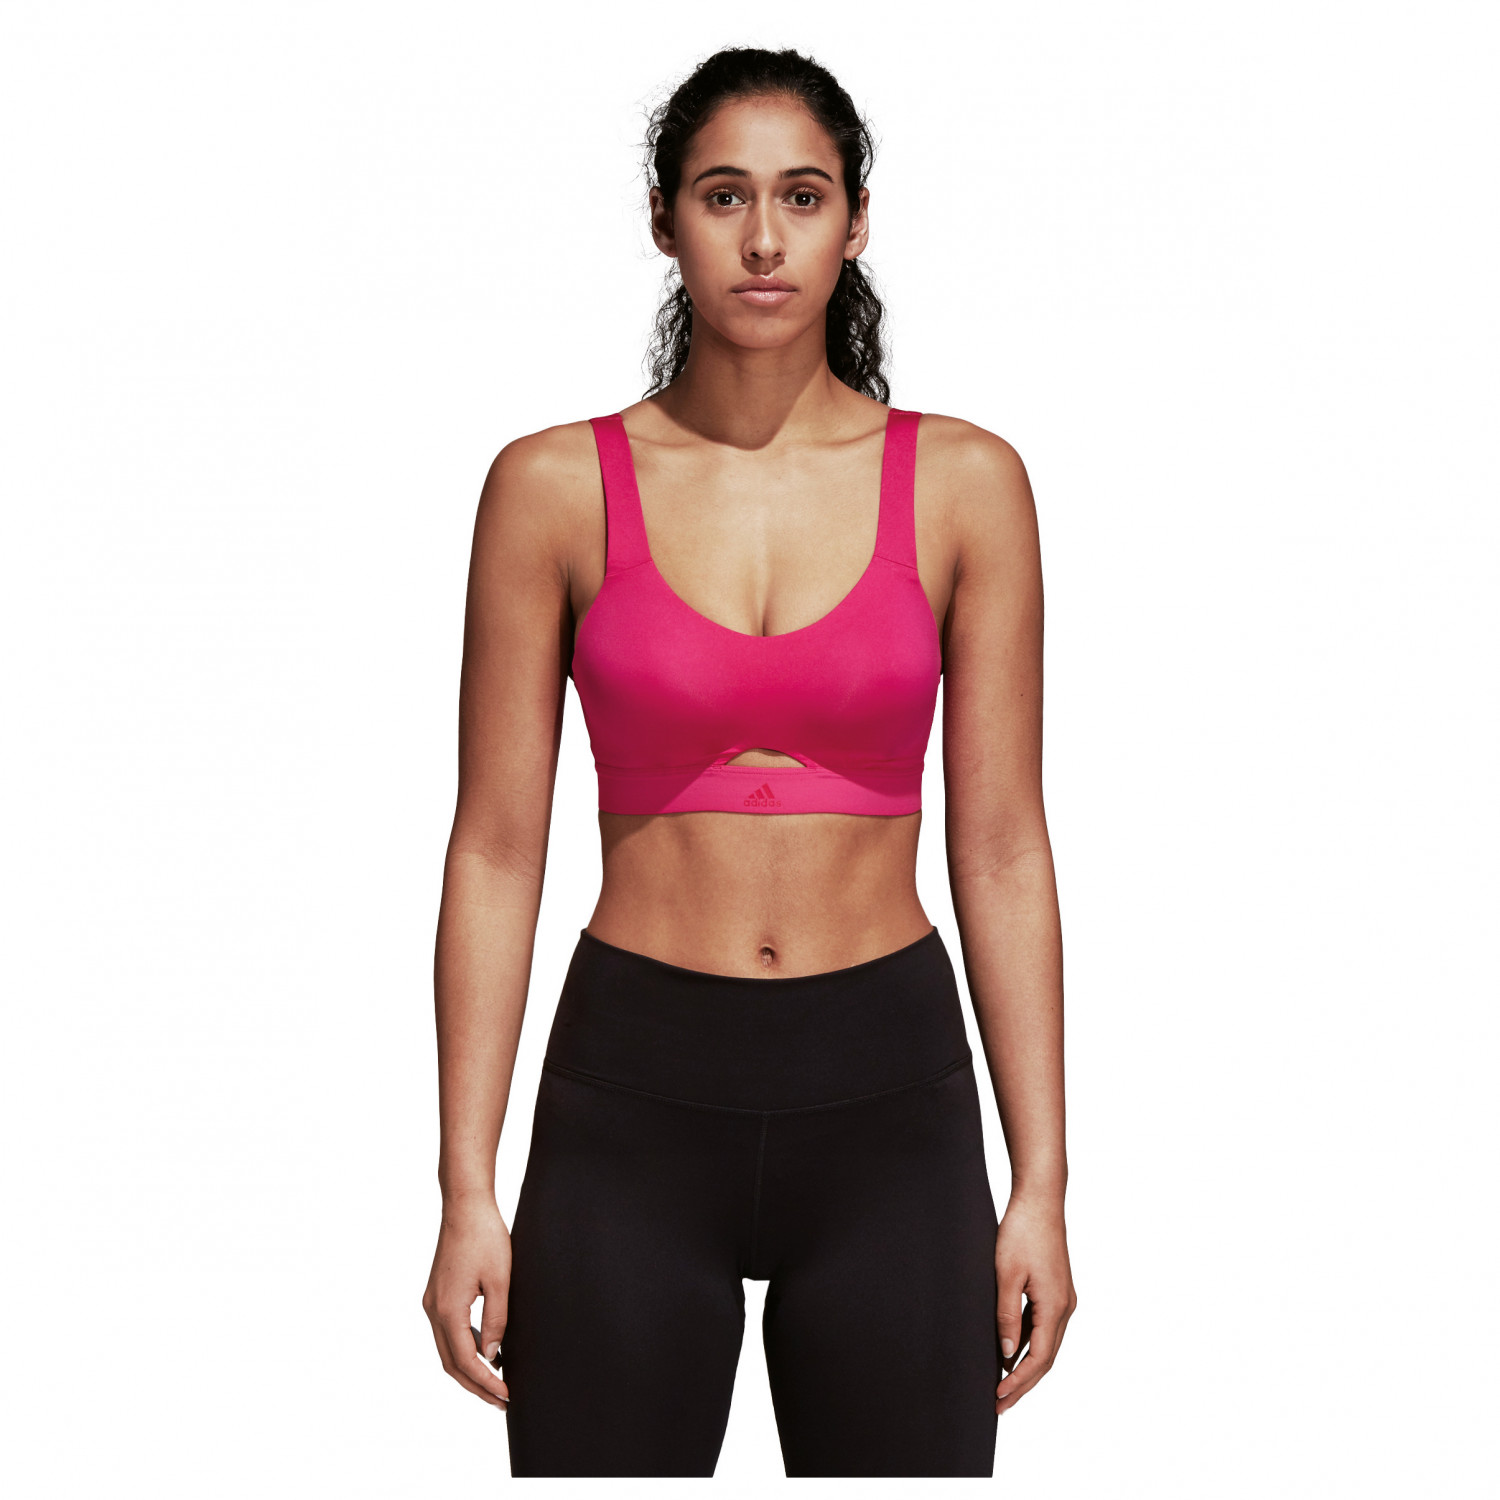 cfd81f3b05 ... Sports bra  adidas - Women s Stronger For It Soft - Sports ...